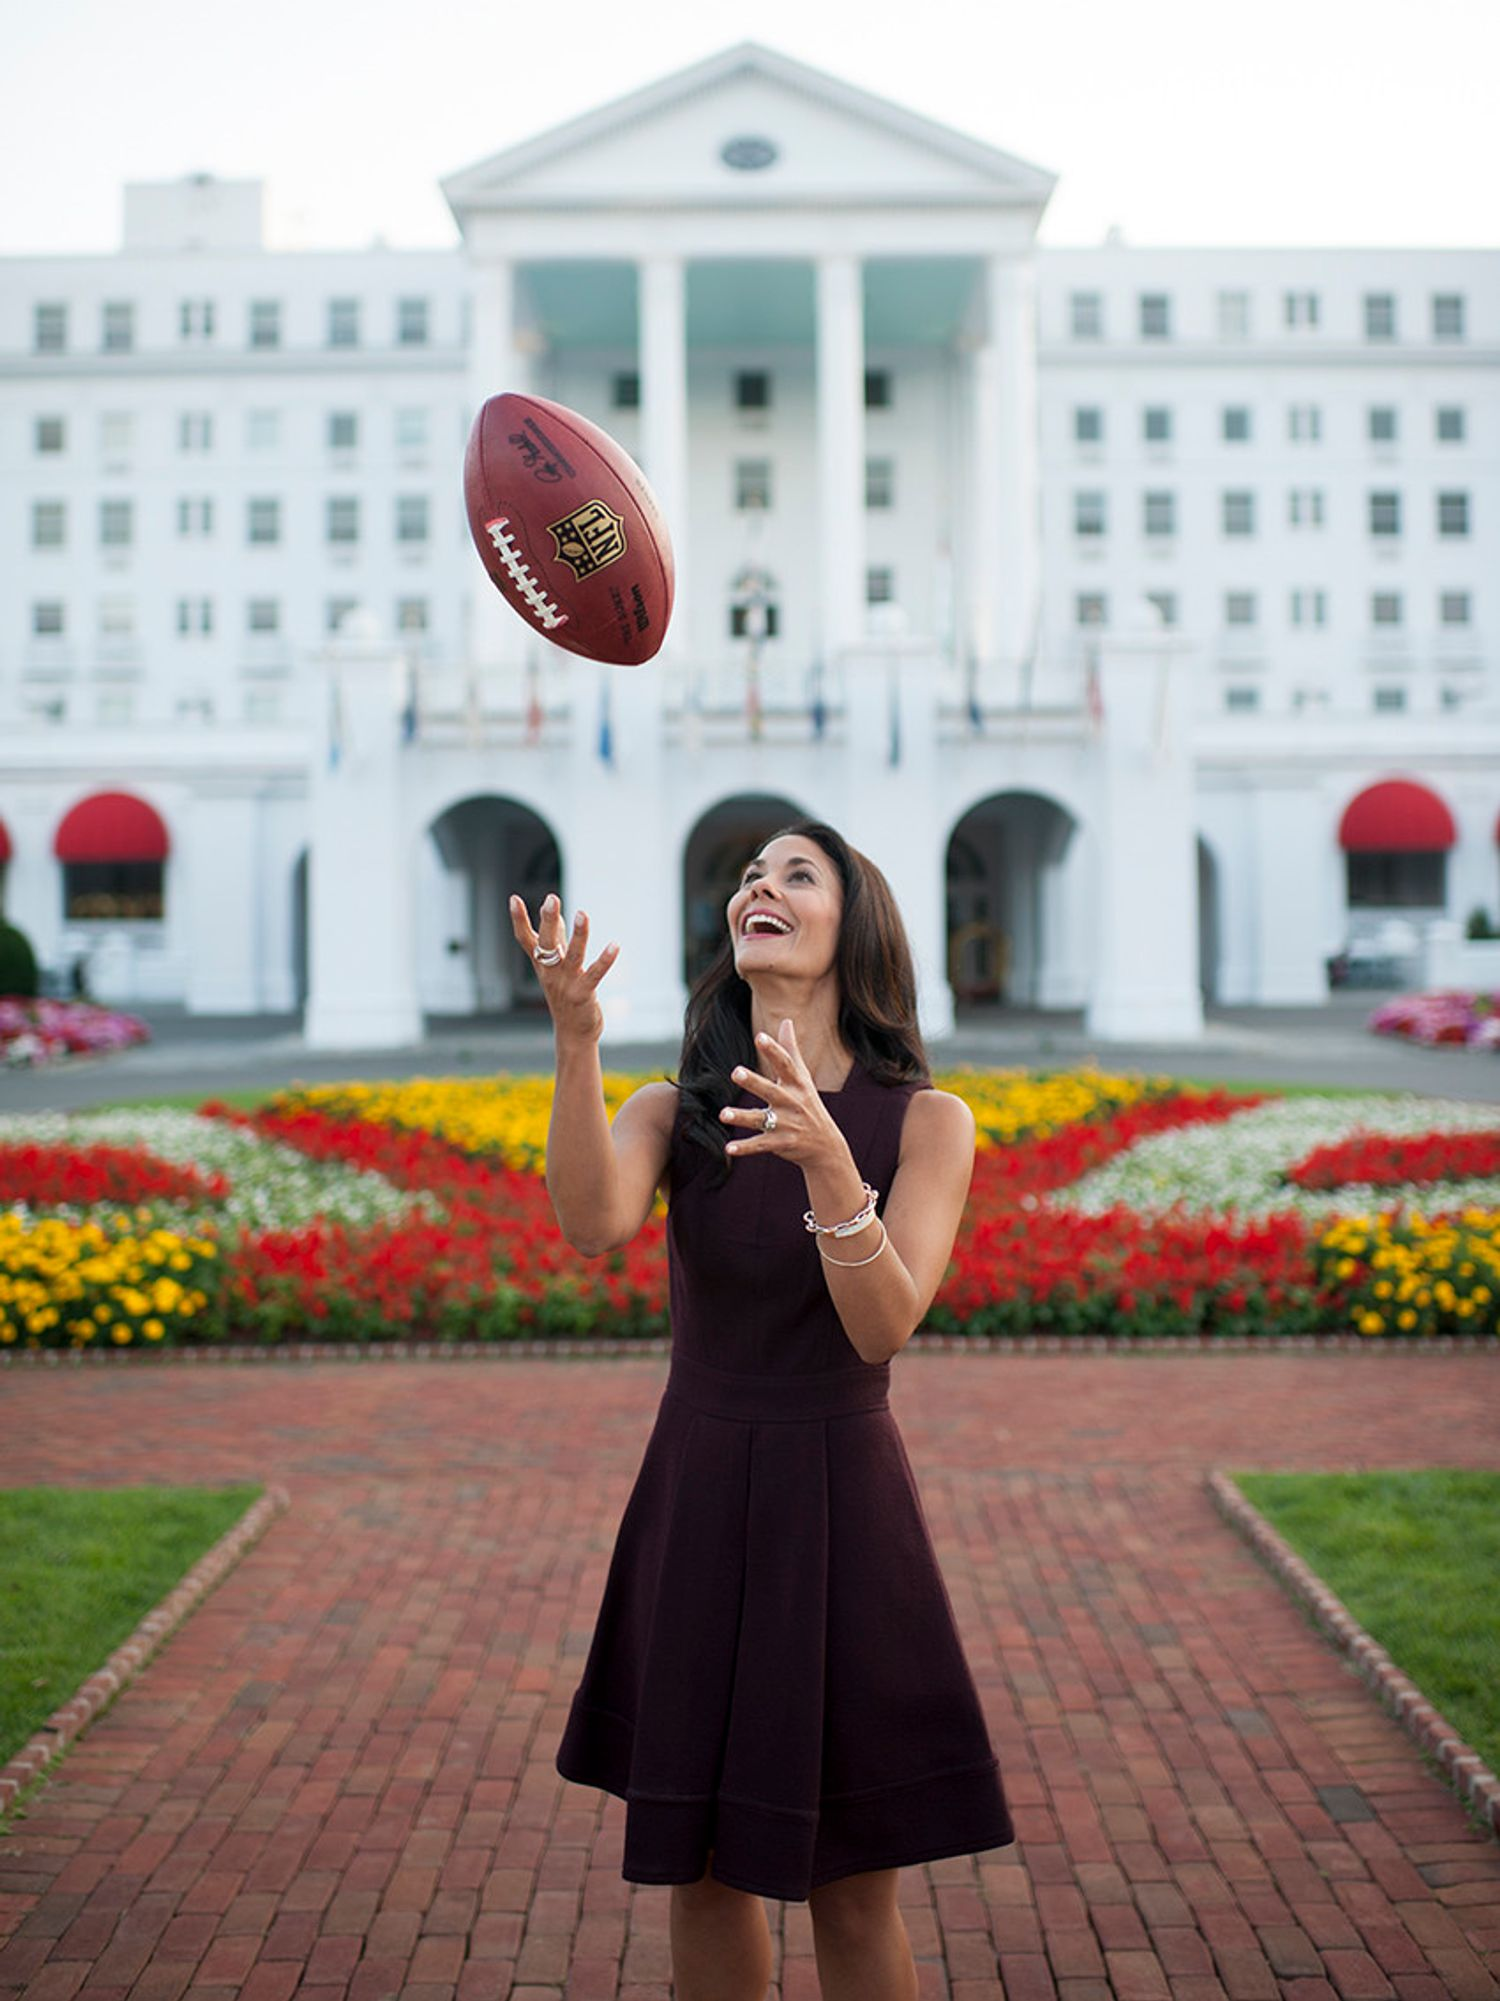 Tracy Wolfson tossing a football up in the air.